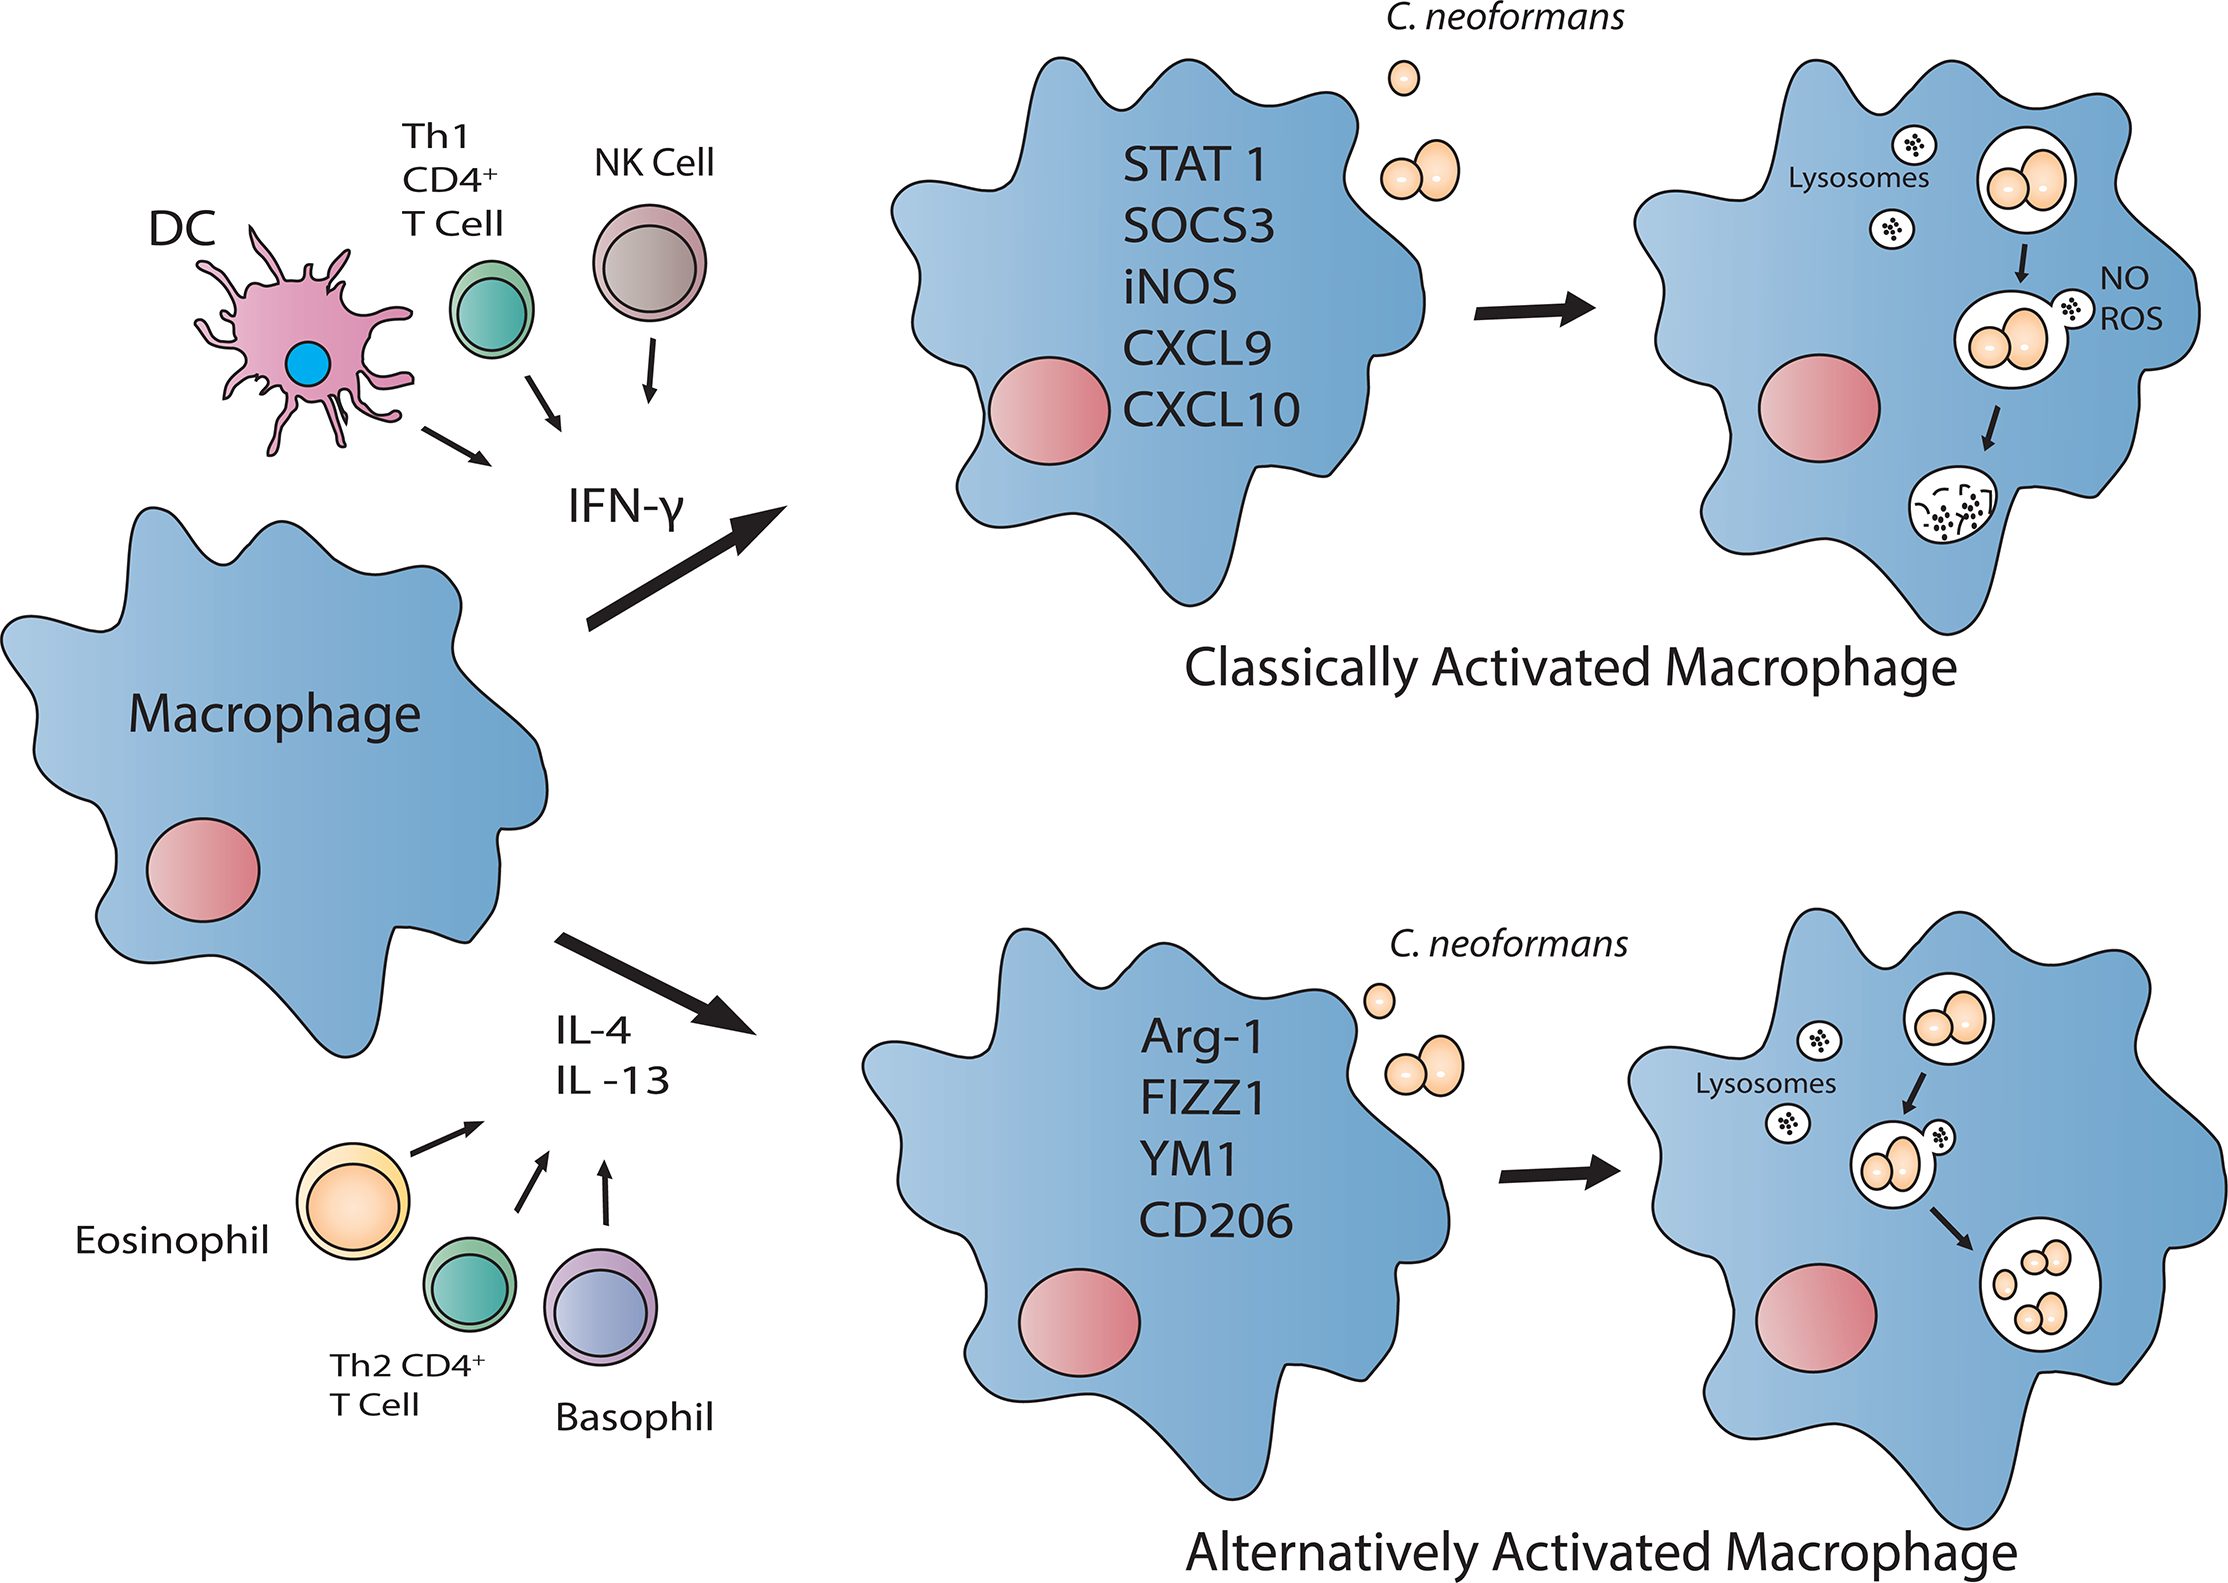 The activation status of the macrophage directly influences cryptococcal killing.